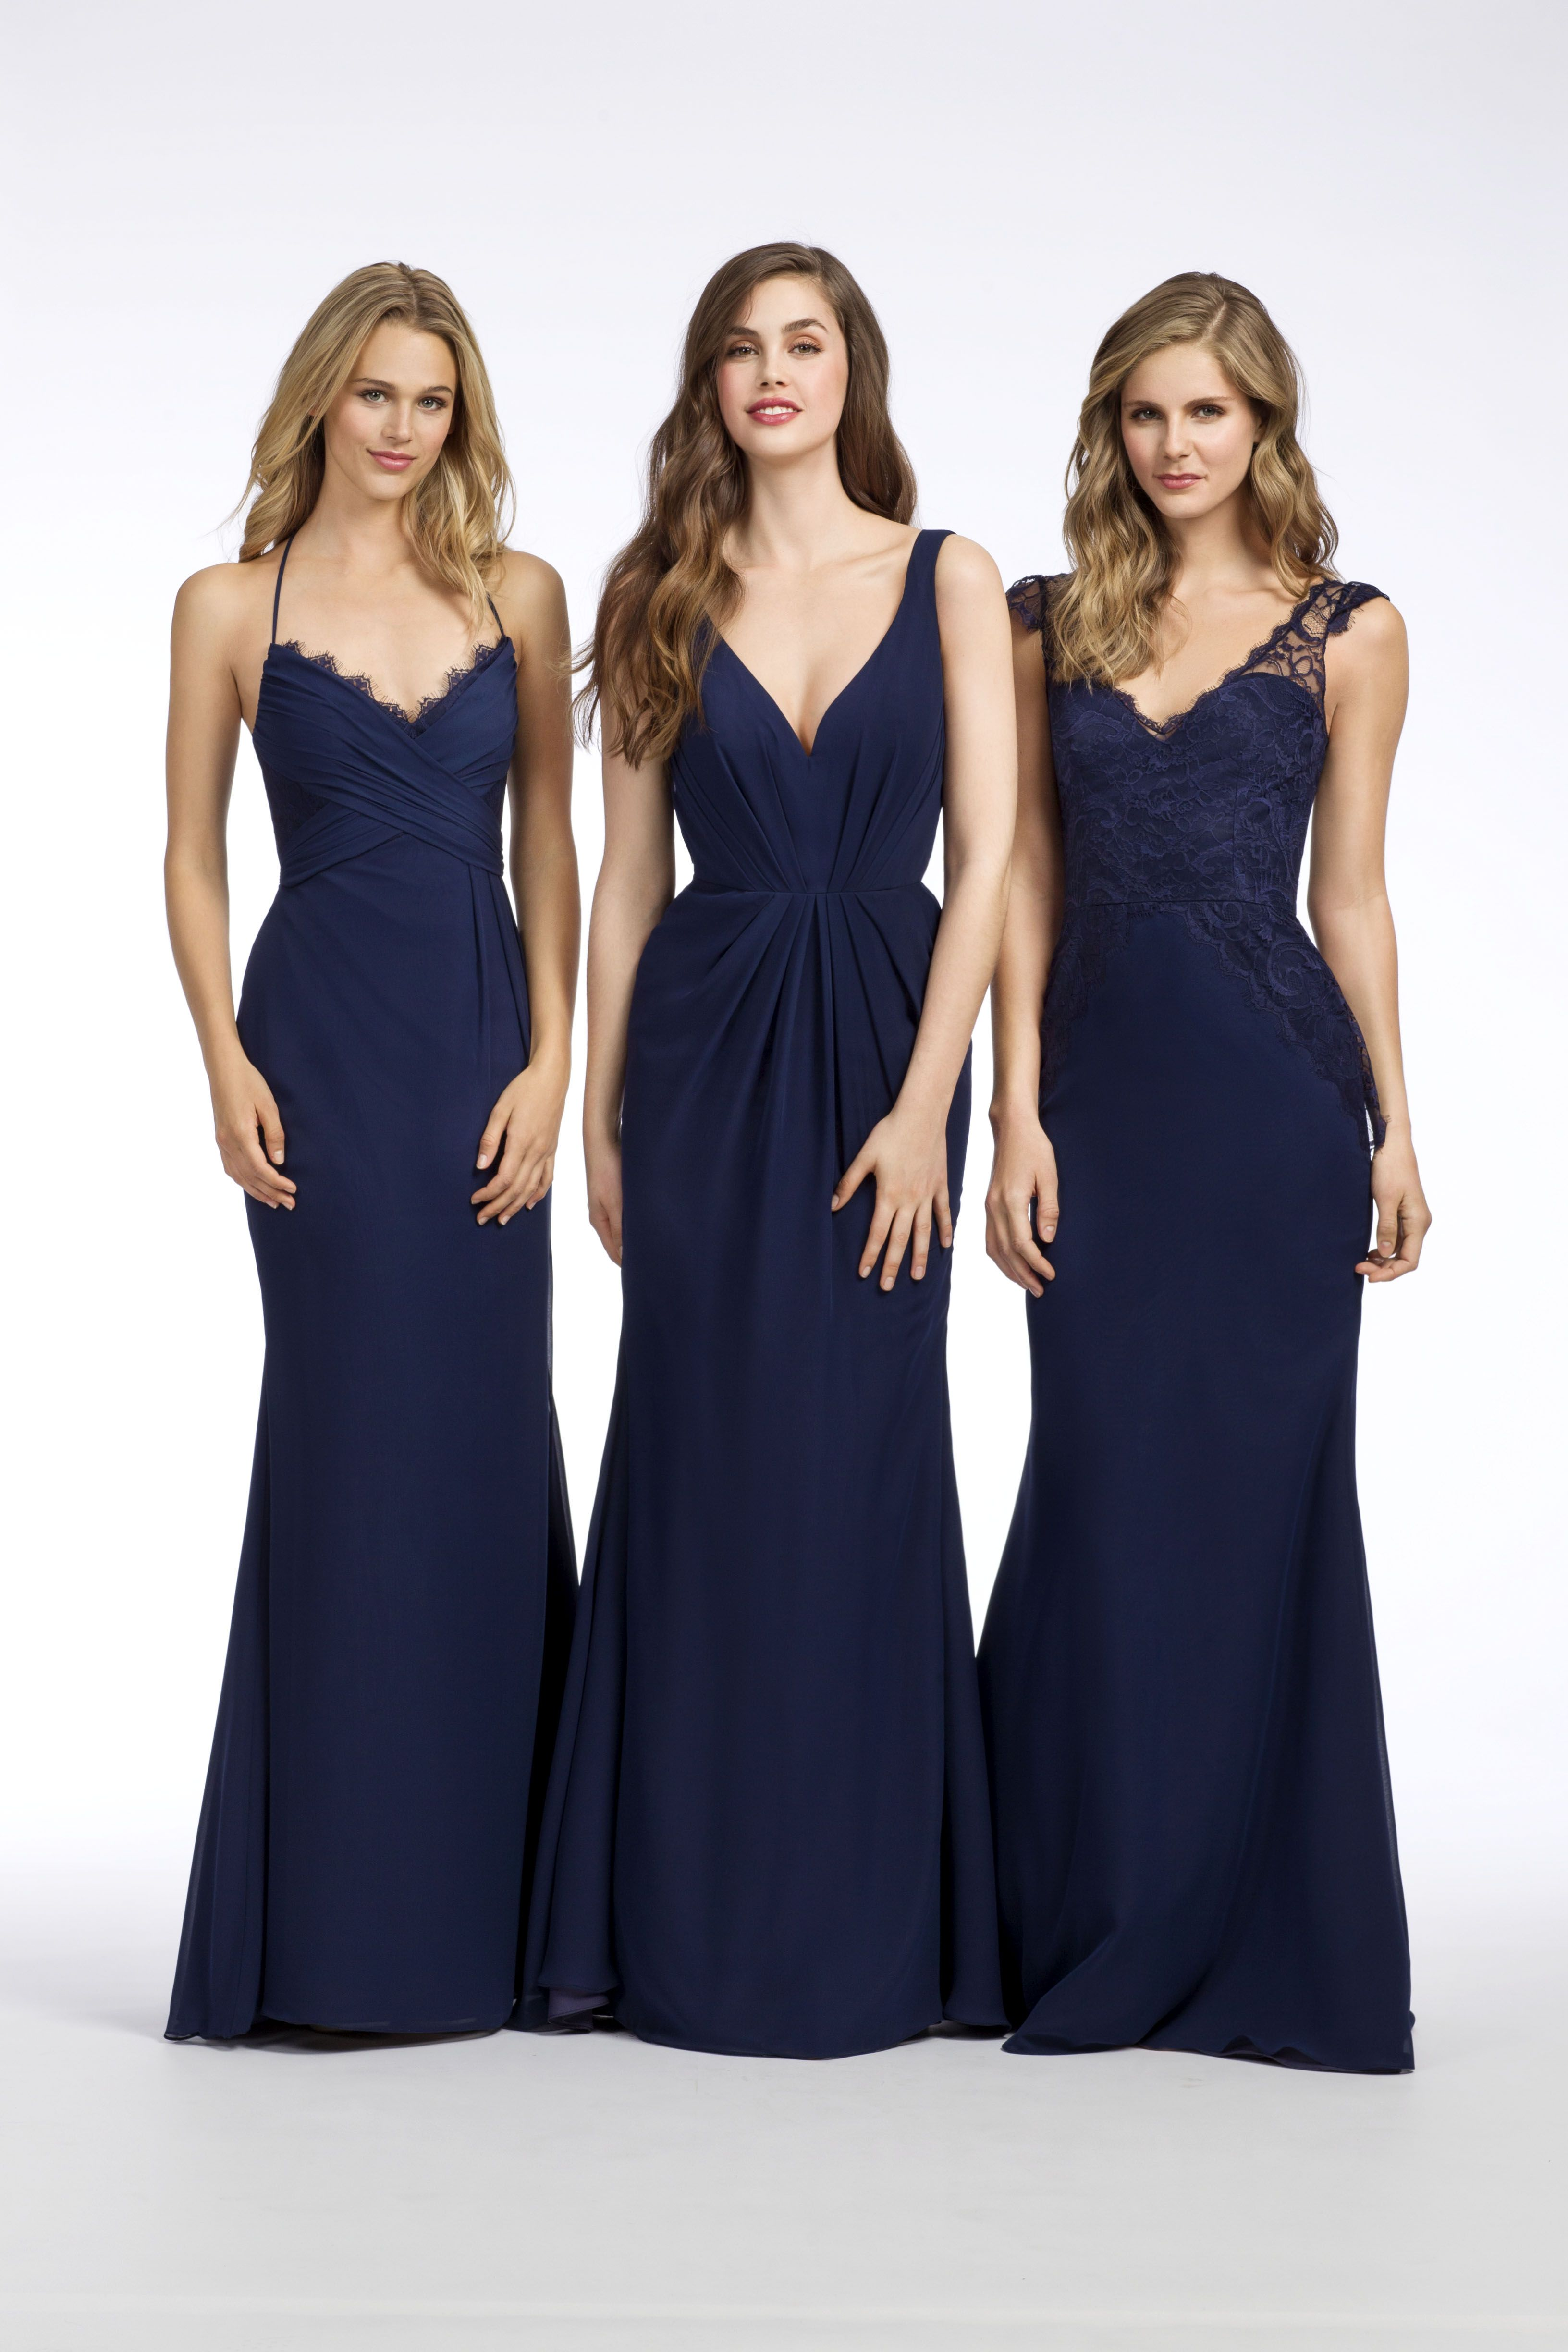 Hayley paige occasions styles 5652 5651 5650 everything indigo chiffon a line bridesmaid gown v neckline natural waist with sunburst draped skirt open cut out back ombrellifo Gallery